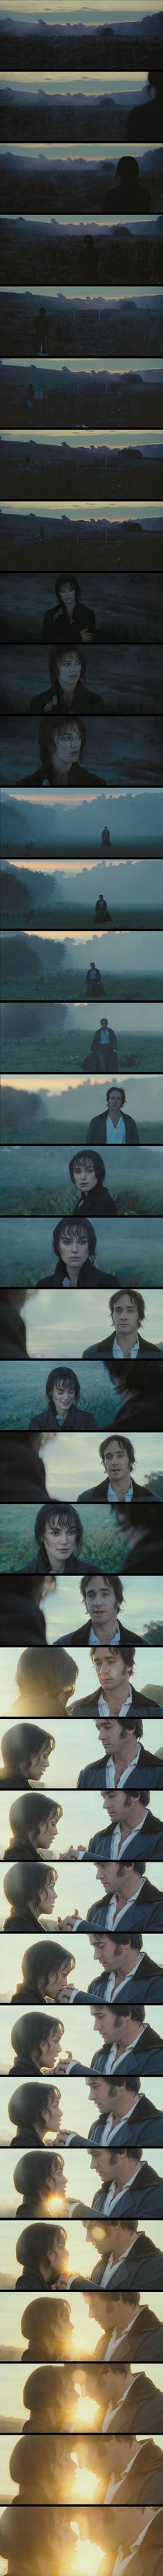 Pride and Prejudice 2005 Final scene where Elizabeth Bennet and Mr. Darcy finally get together. Jo Wright takes some artistic liberty in intensifying the romance in this story with this scene, given that Austen avoided the passionate intensity that characterized romantic novels.